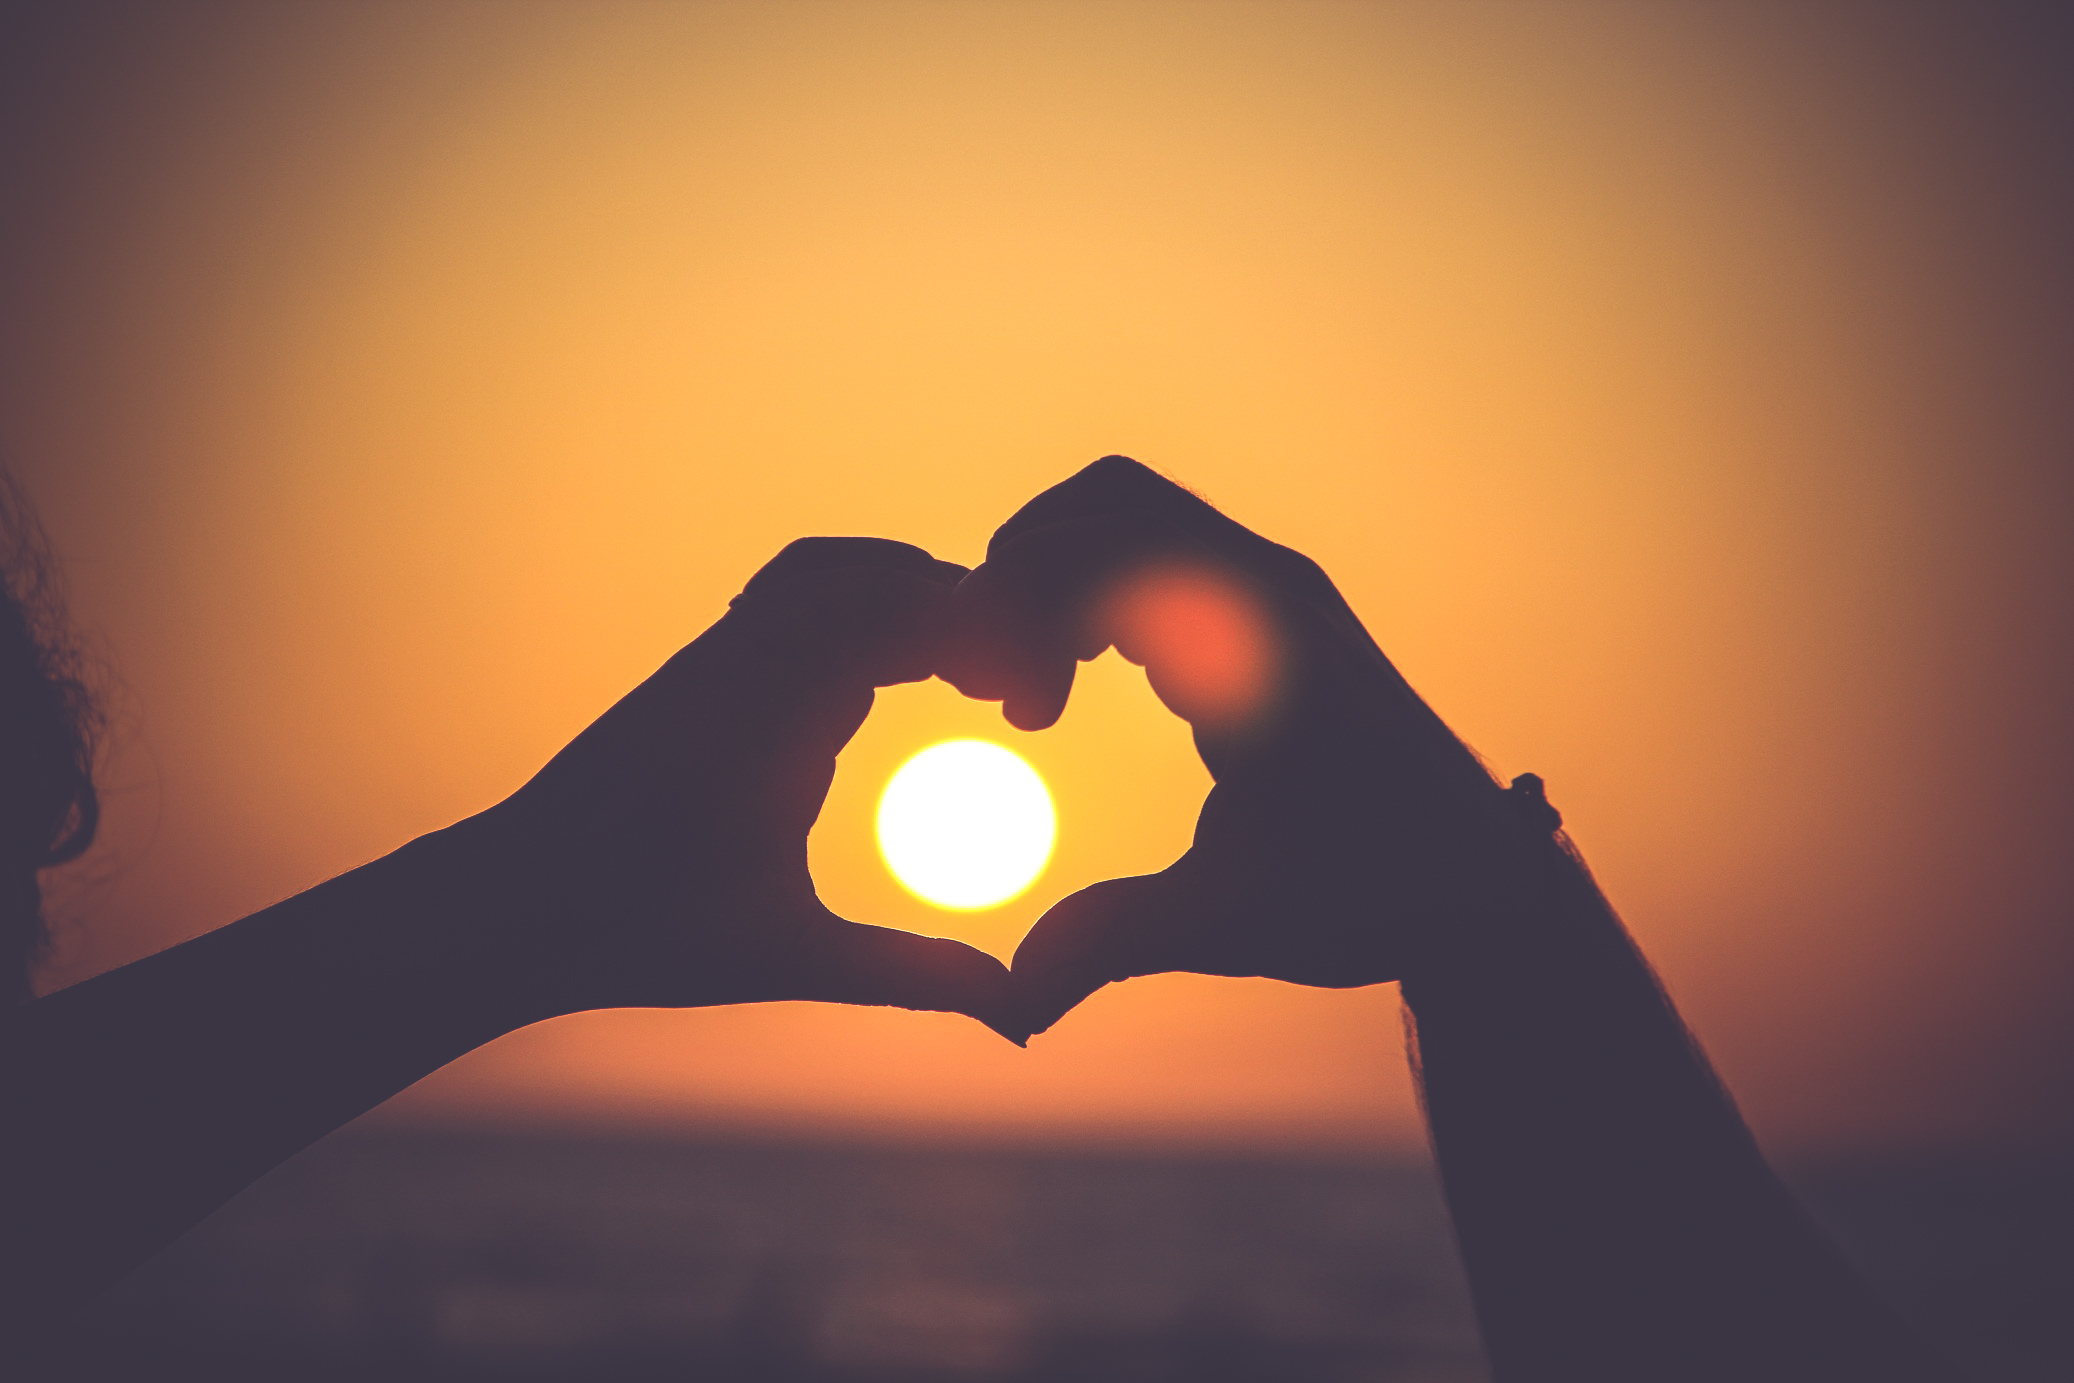 1. FInd your Inner Hope - It's a term I use to describe your calm, curious, compassionate inner state, which will anchor you through the many ups and and downs in life and help you heal from the inside out.